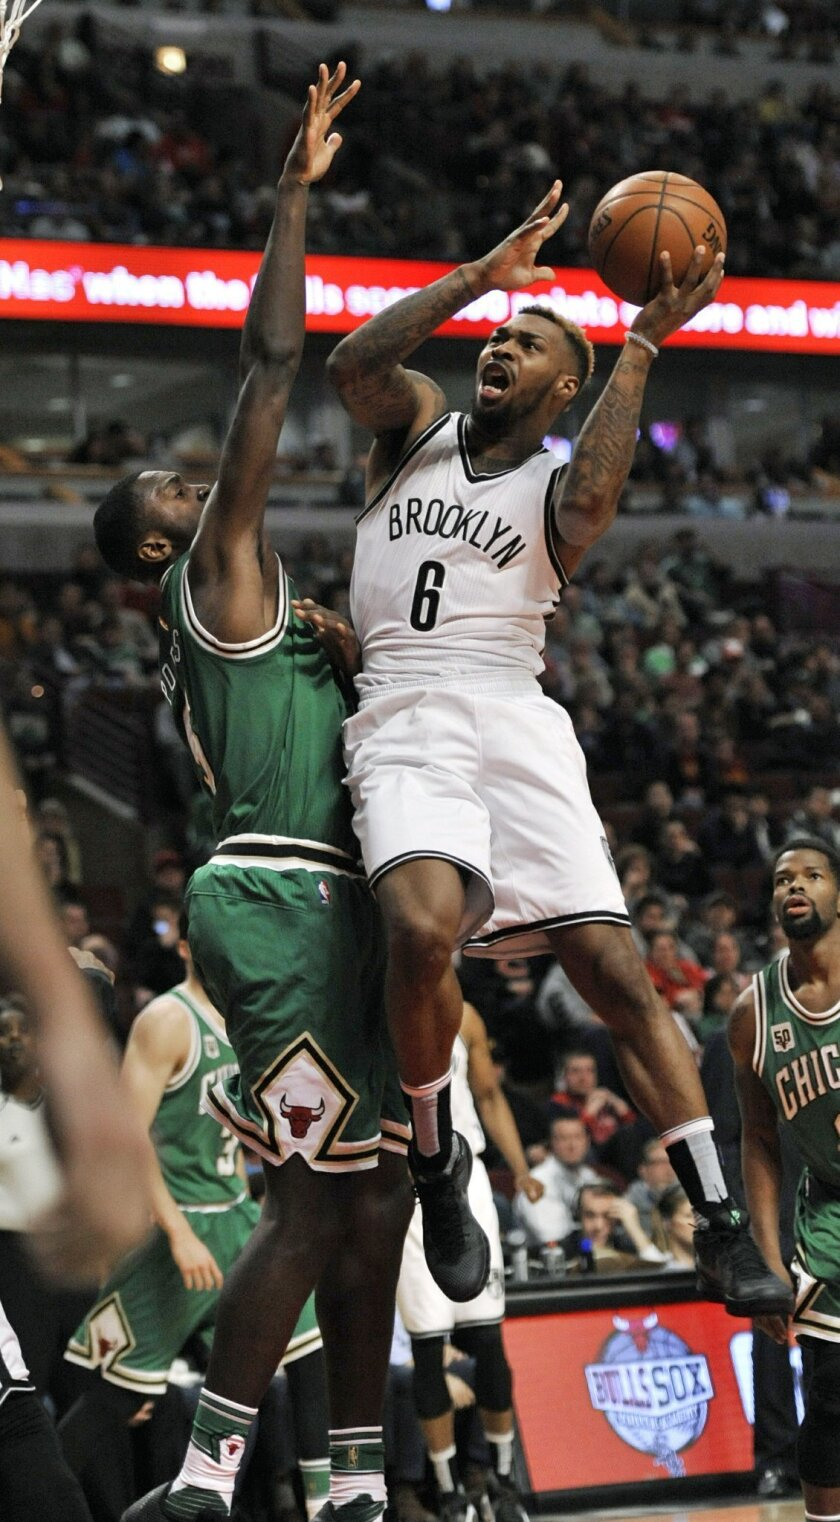 Brooklyn Nets' Sean Kilpatrick (6) goes up for a shot against Chicago Bulls' Bobby Portis (5) during the second half of an NBA basketball game Thursday, March 17, 2016, in Chicago. Chicago won 118-102. (AP Photo/Paul Beaty)